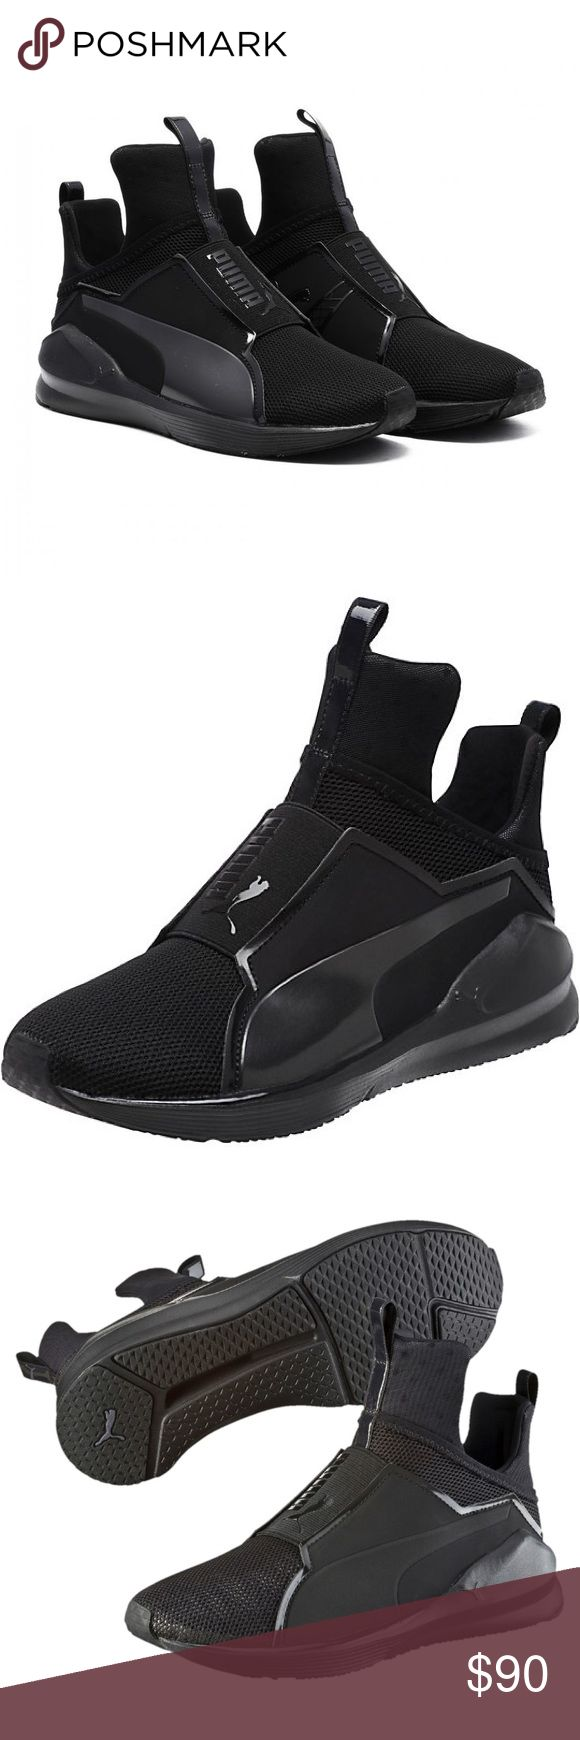 Kylie Jenner Puma Fierce Core All black puma sneaker. Super comfortable and soft. New. Puma Shoes Sneakers